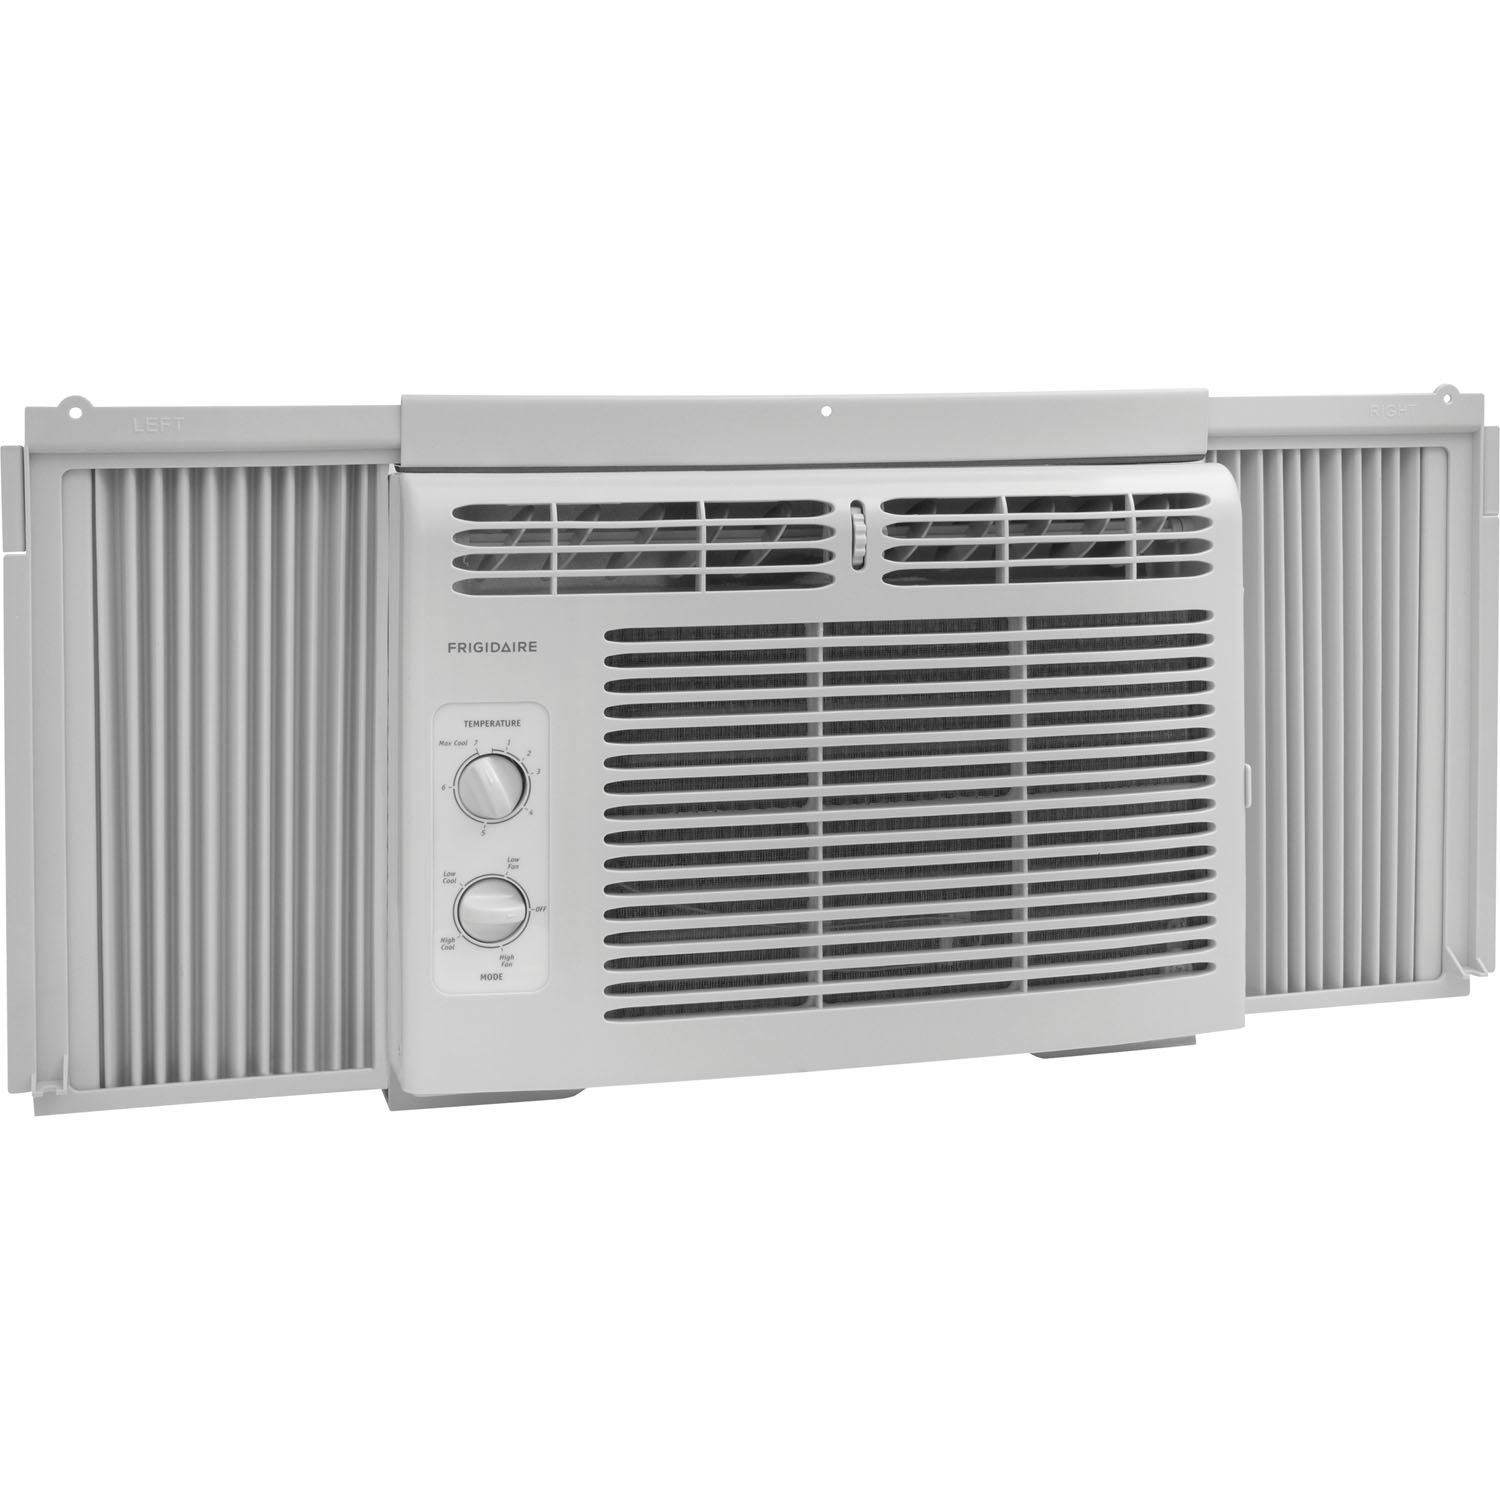 Frigidaire FFRA0511R1 5, 000 BTU 115V Window-Mounted Mini-Compact Air Conditioner with Mechanical Controls by Frigidaire (Image #8)